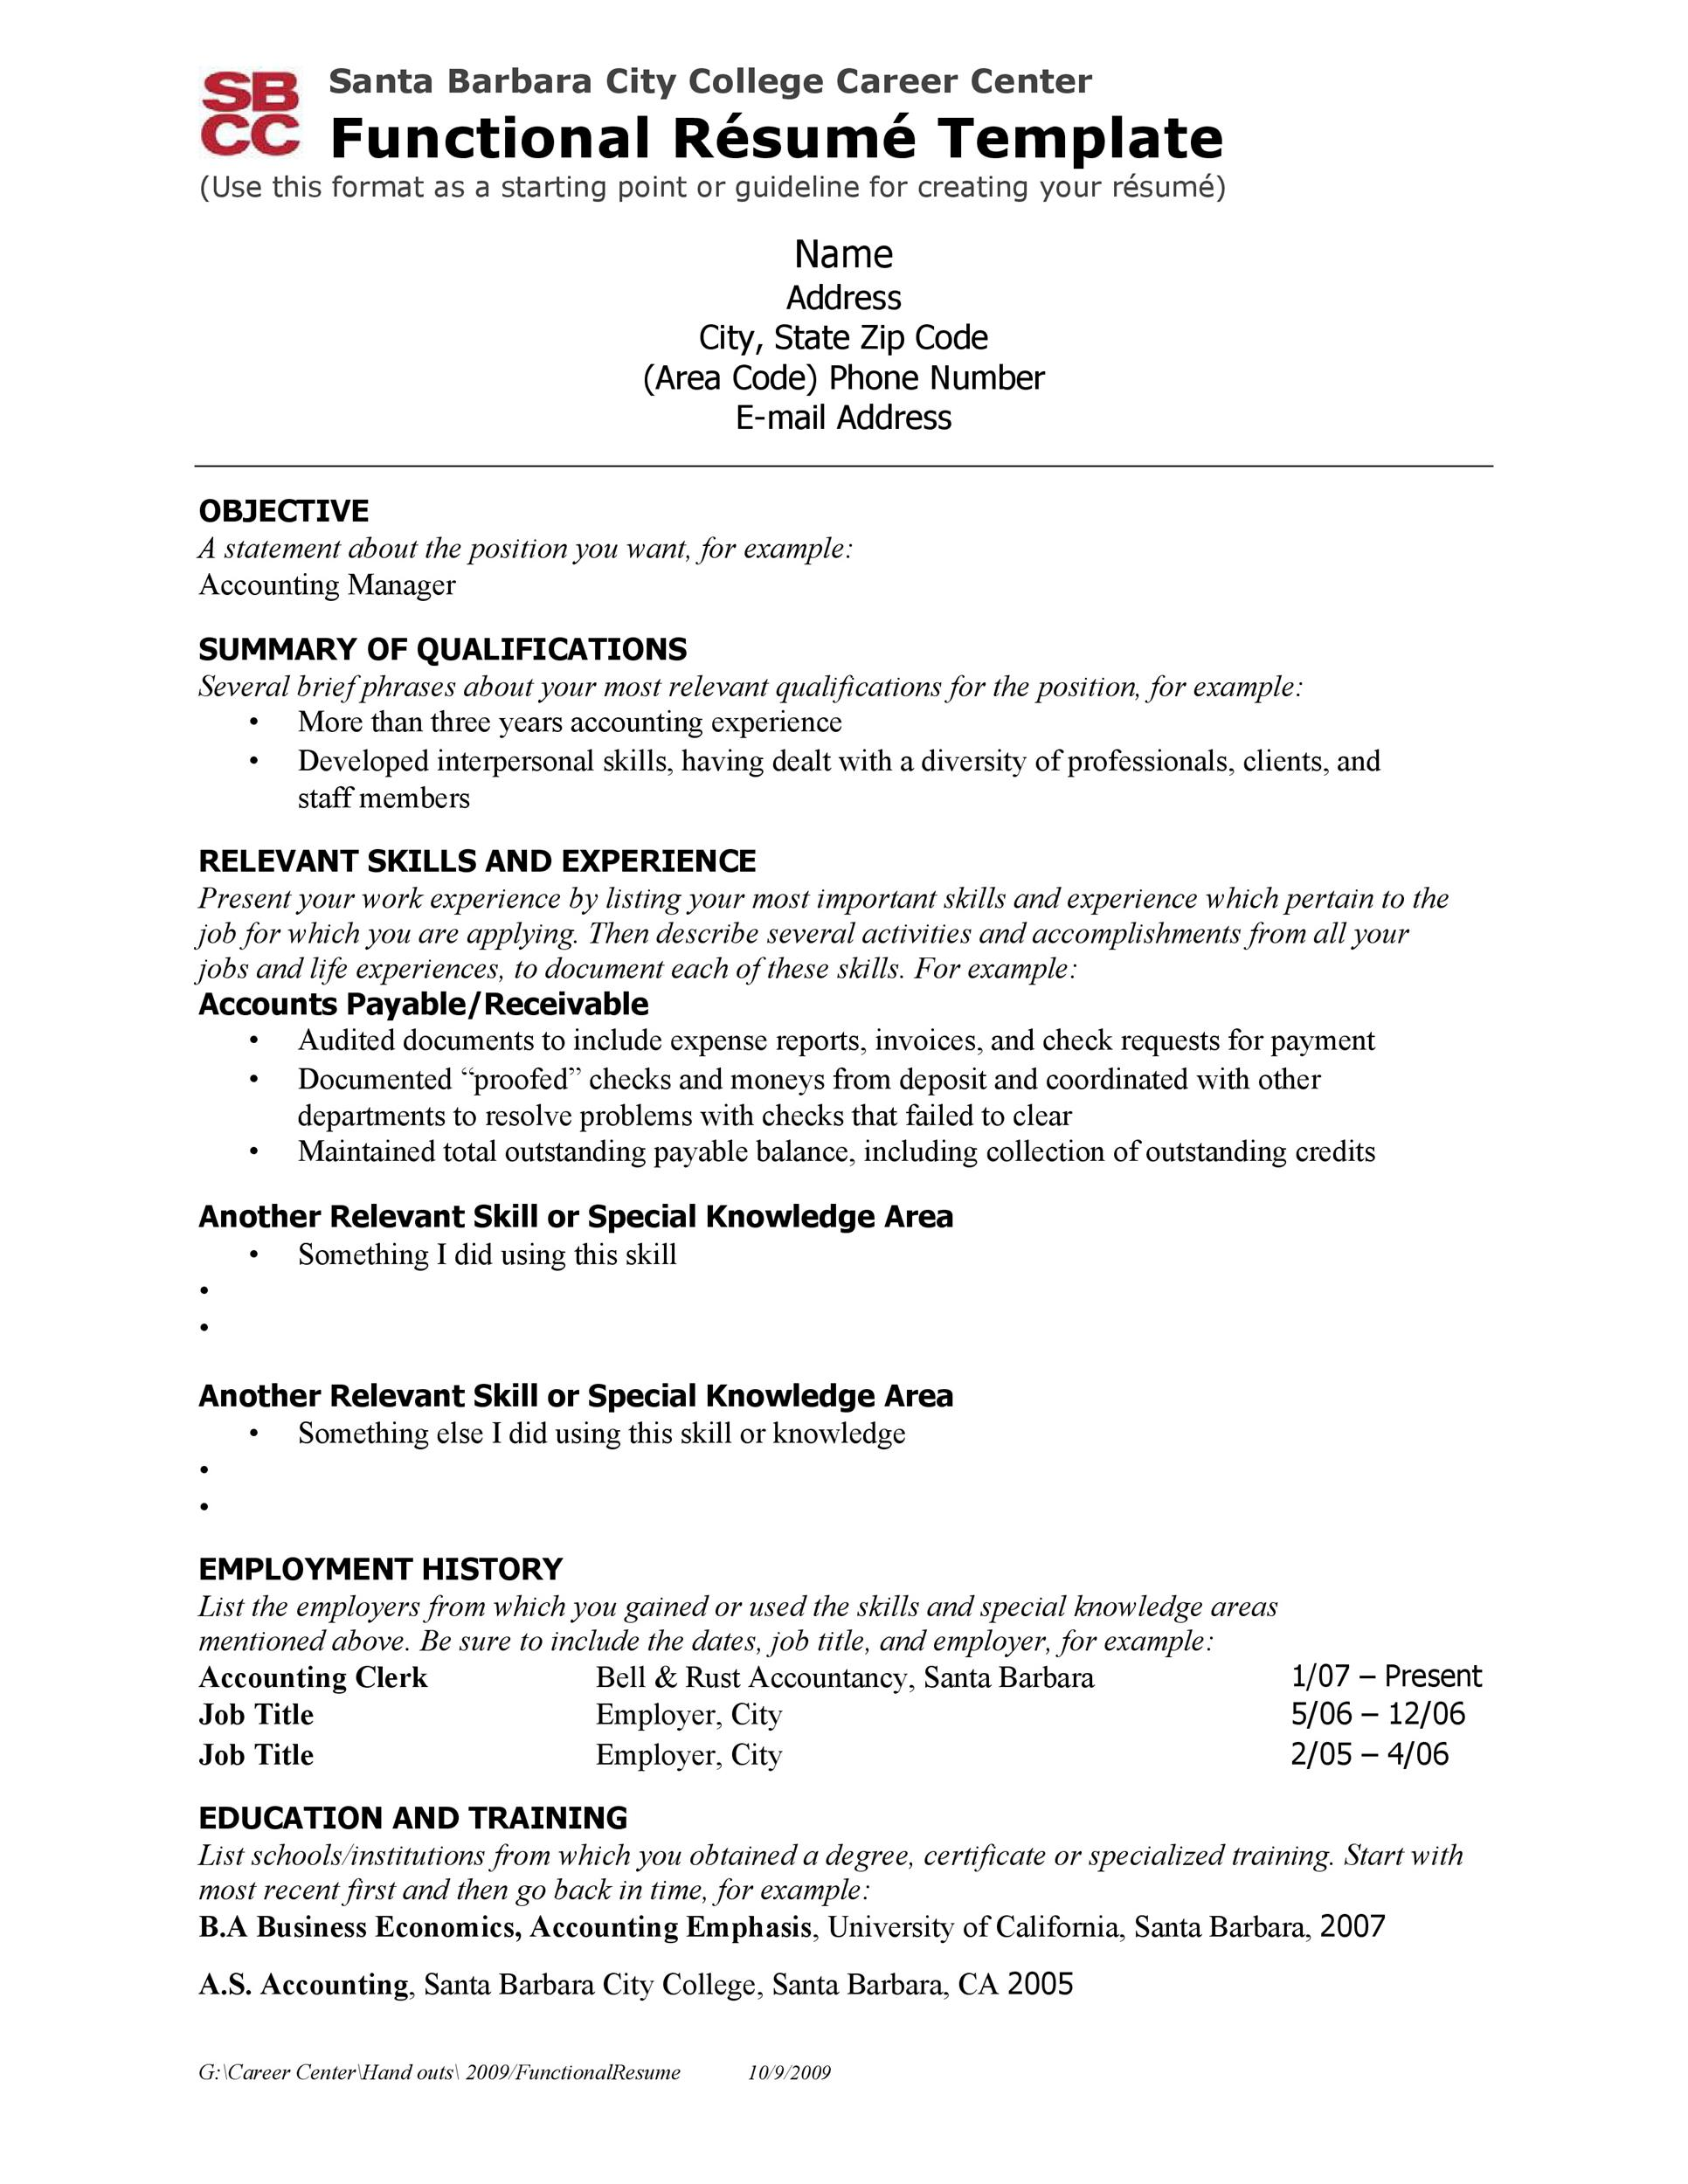 Free college resume template 12